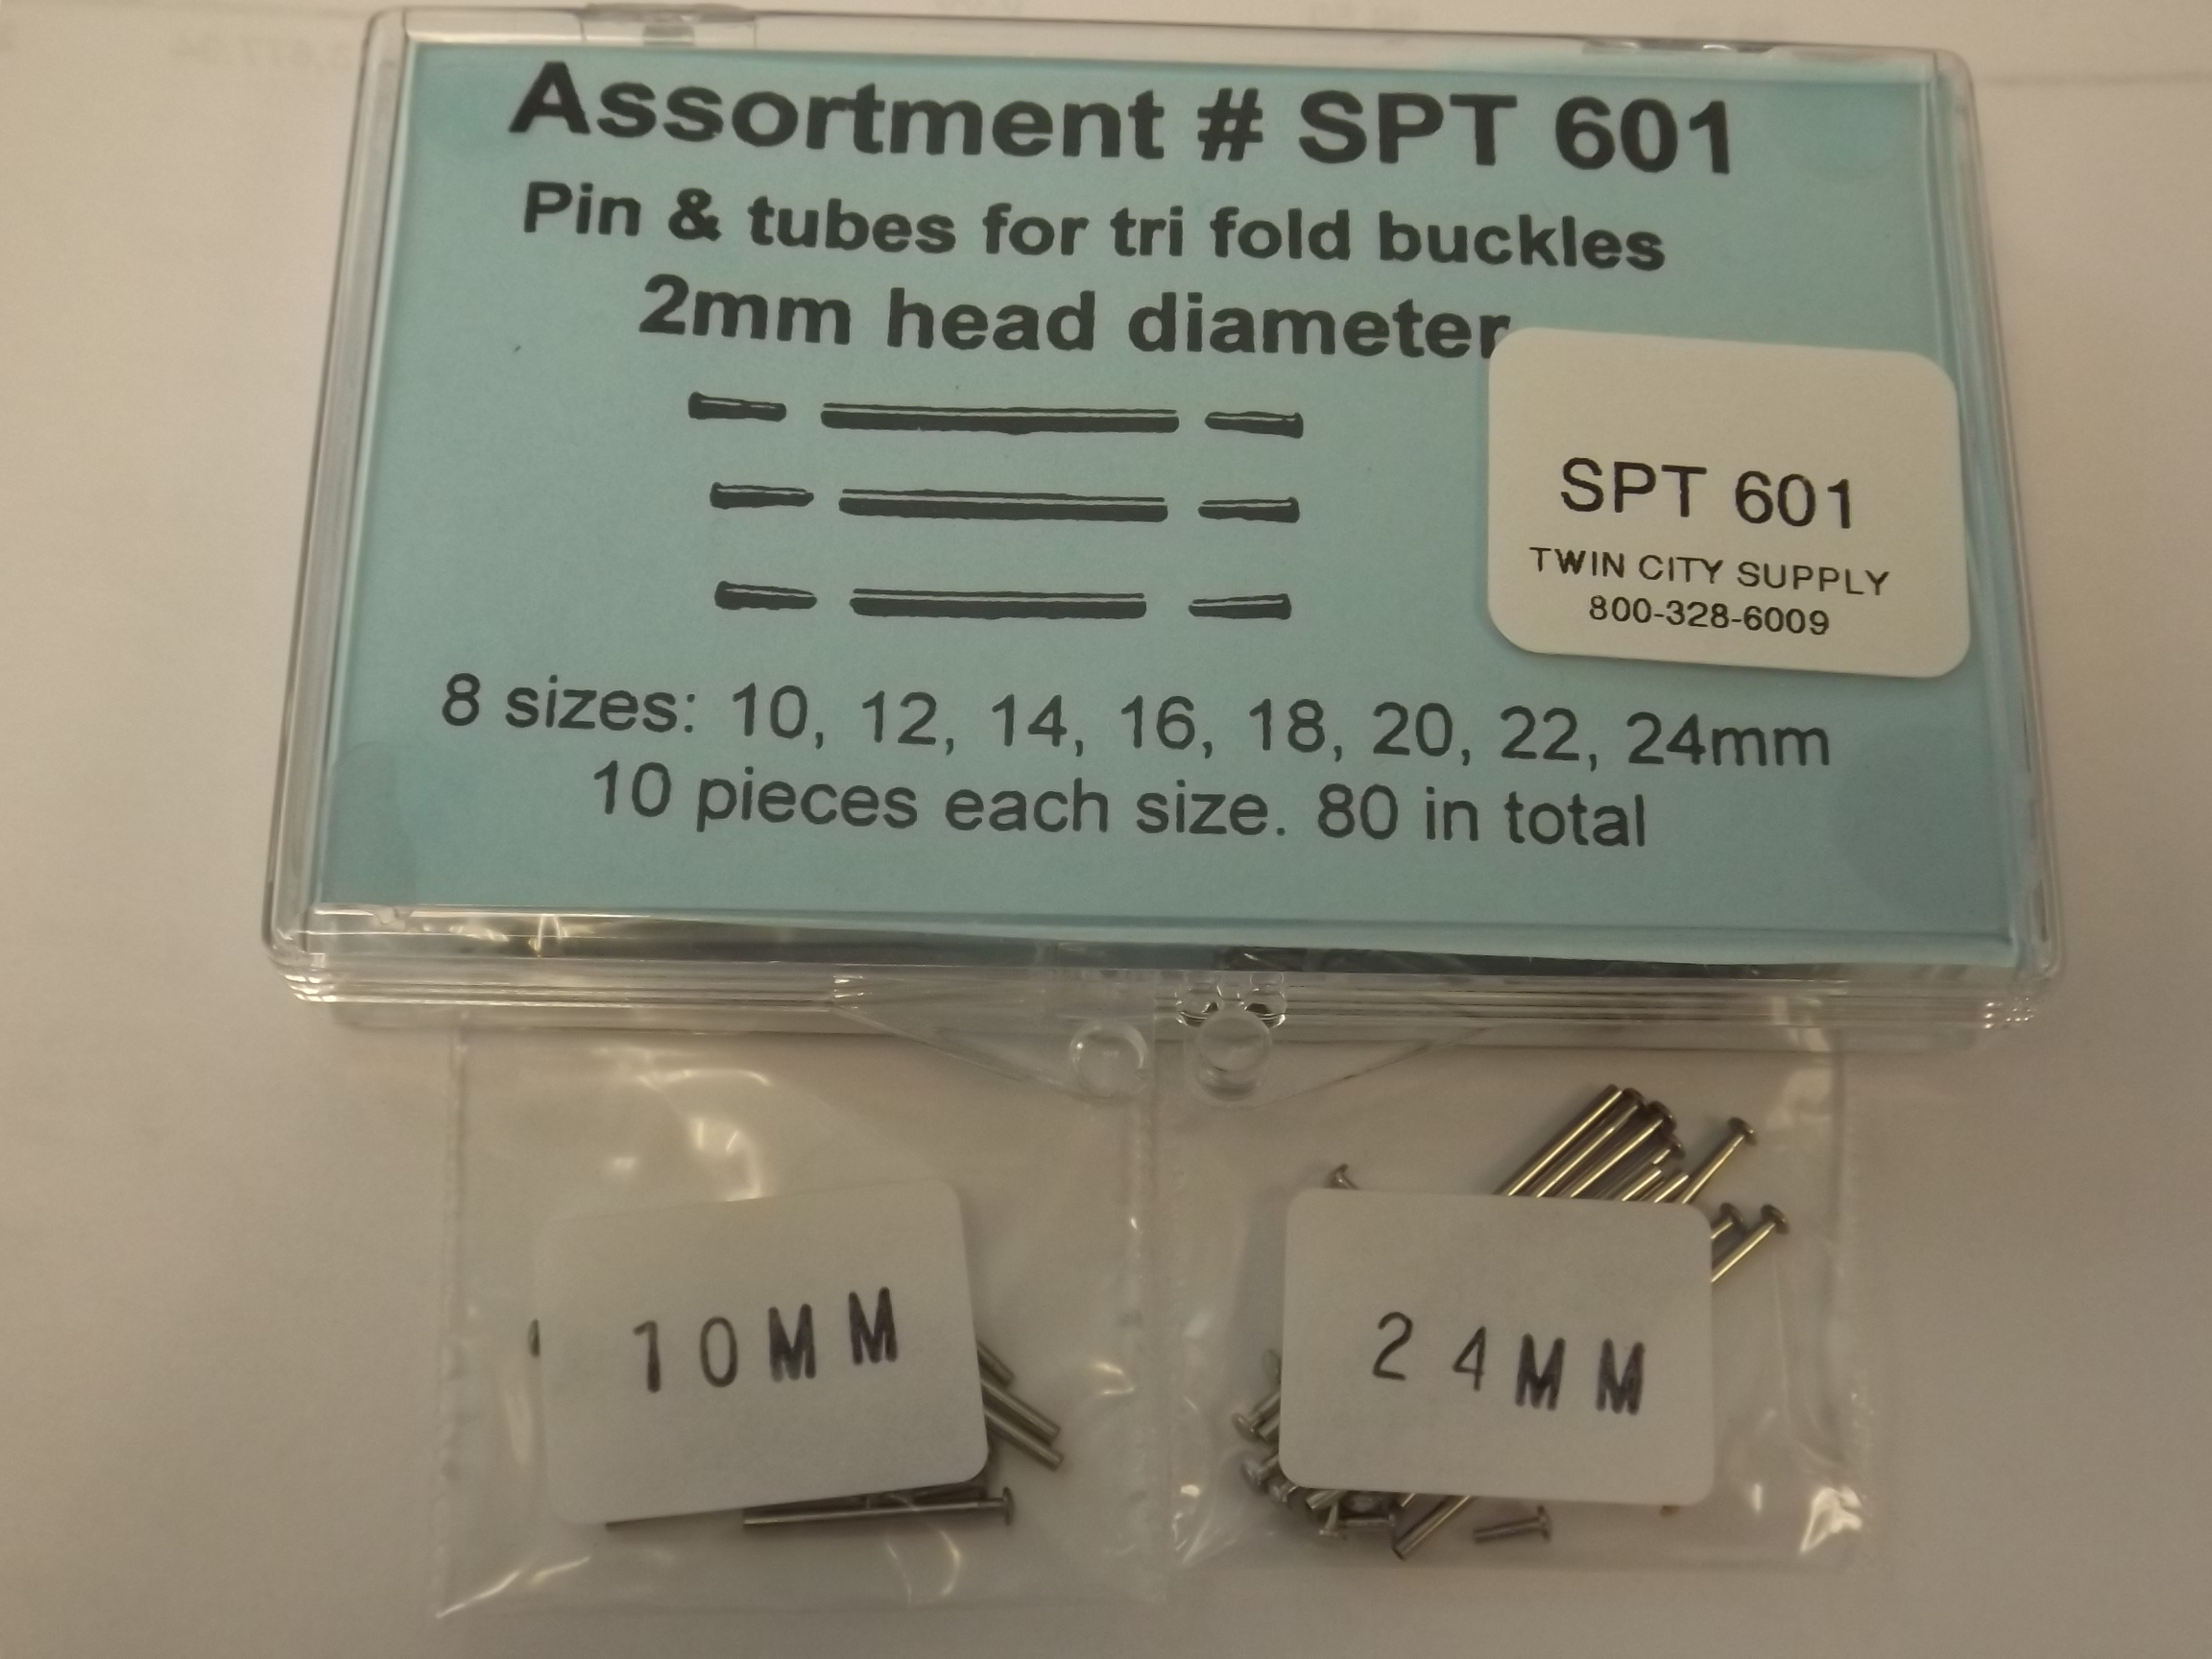 SPT601 Tri-Fold Buckle Pins & Tubes Assortment- with 2mm head diameter- Acon